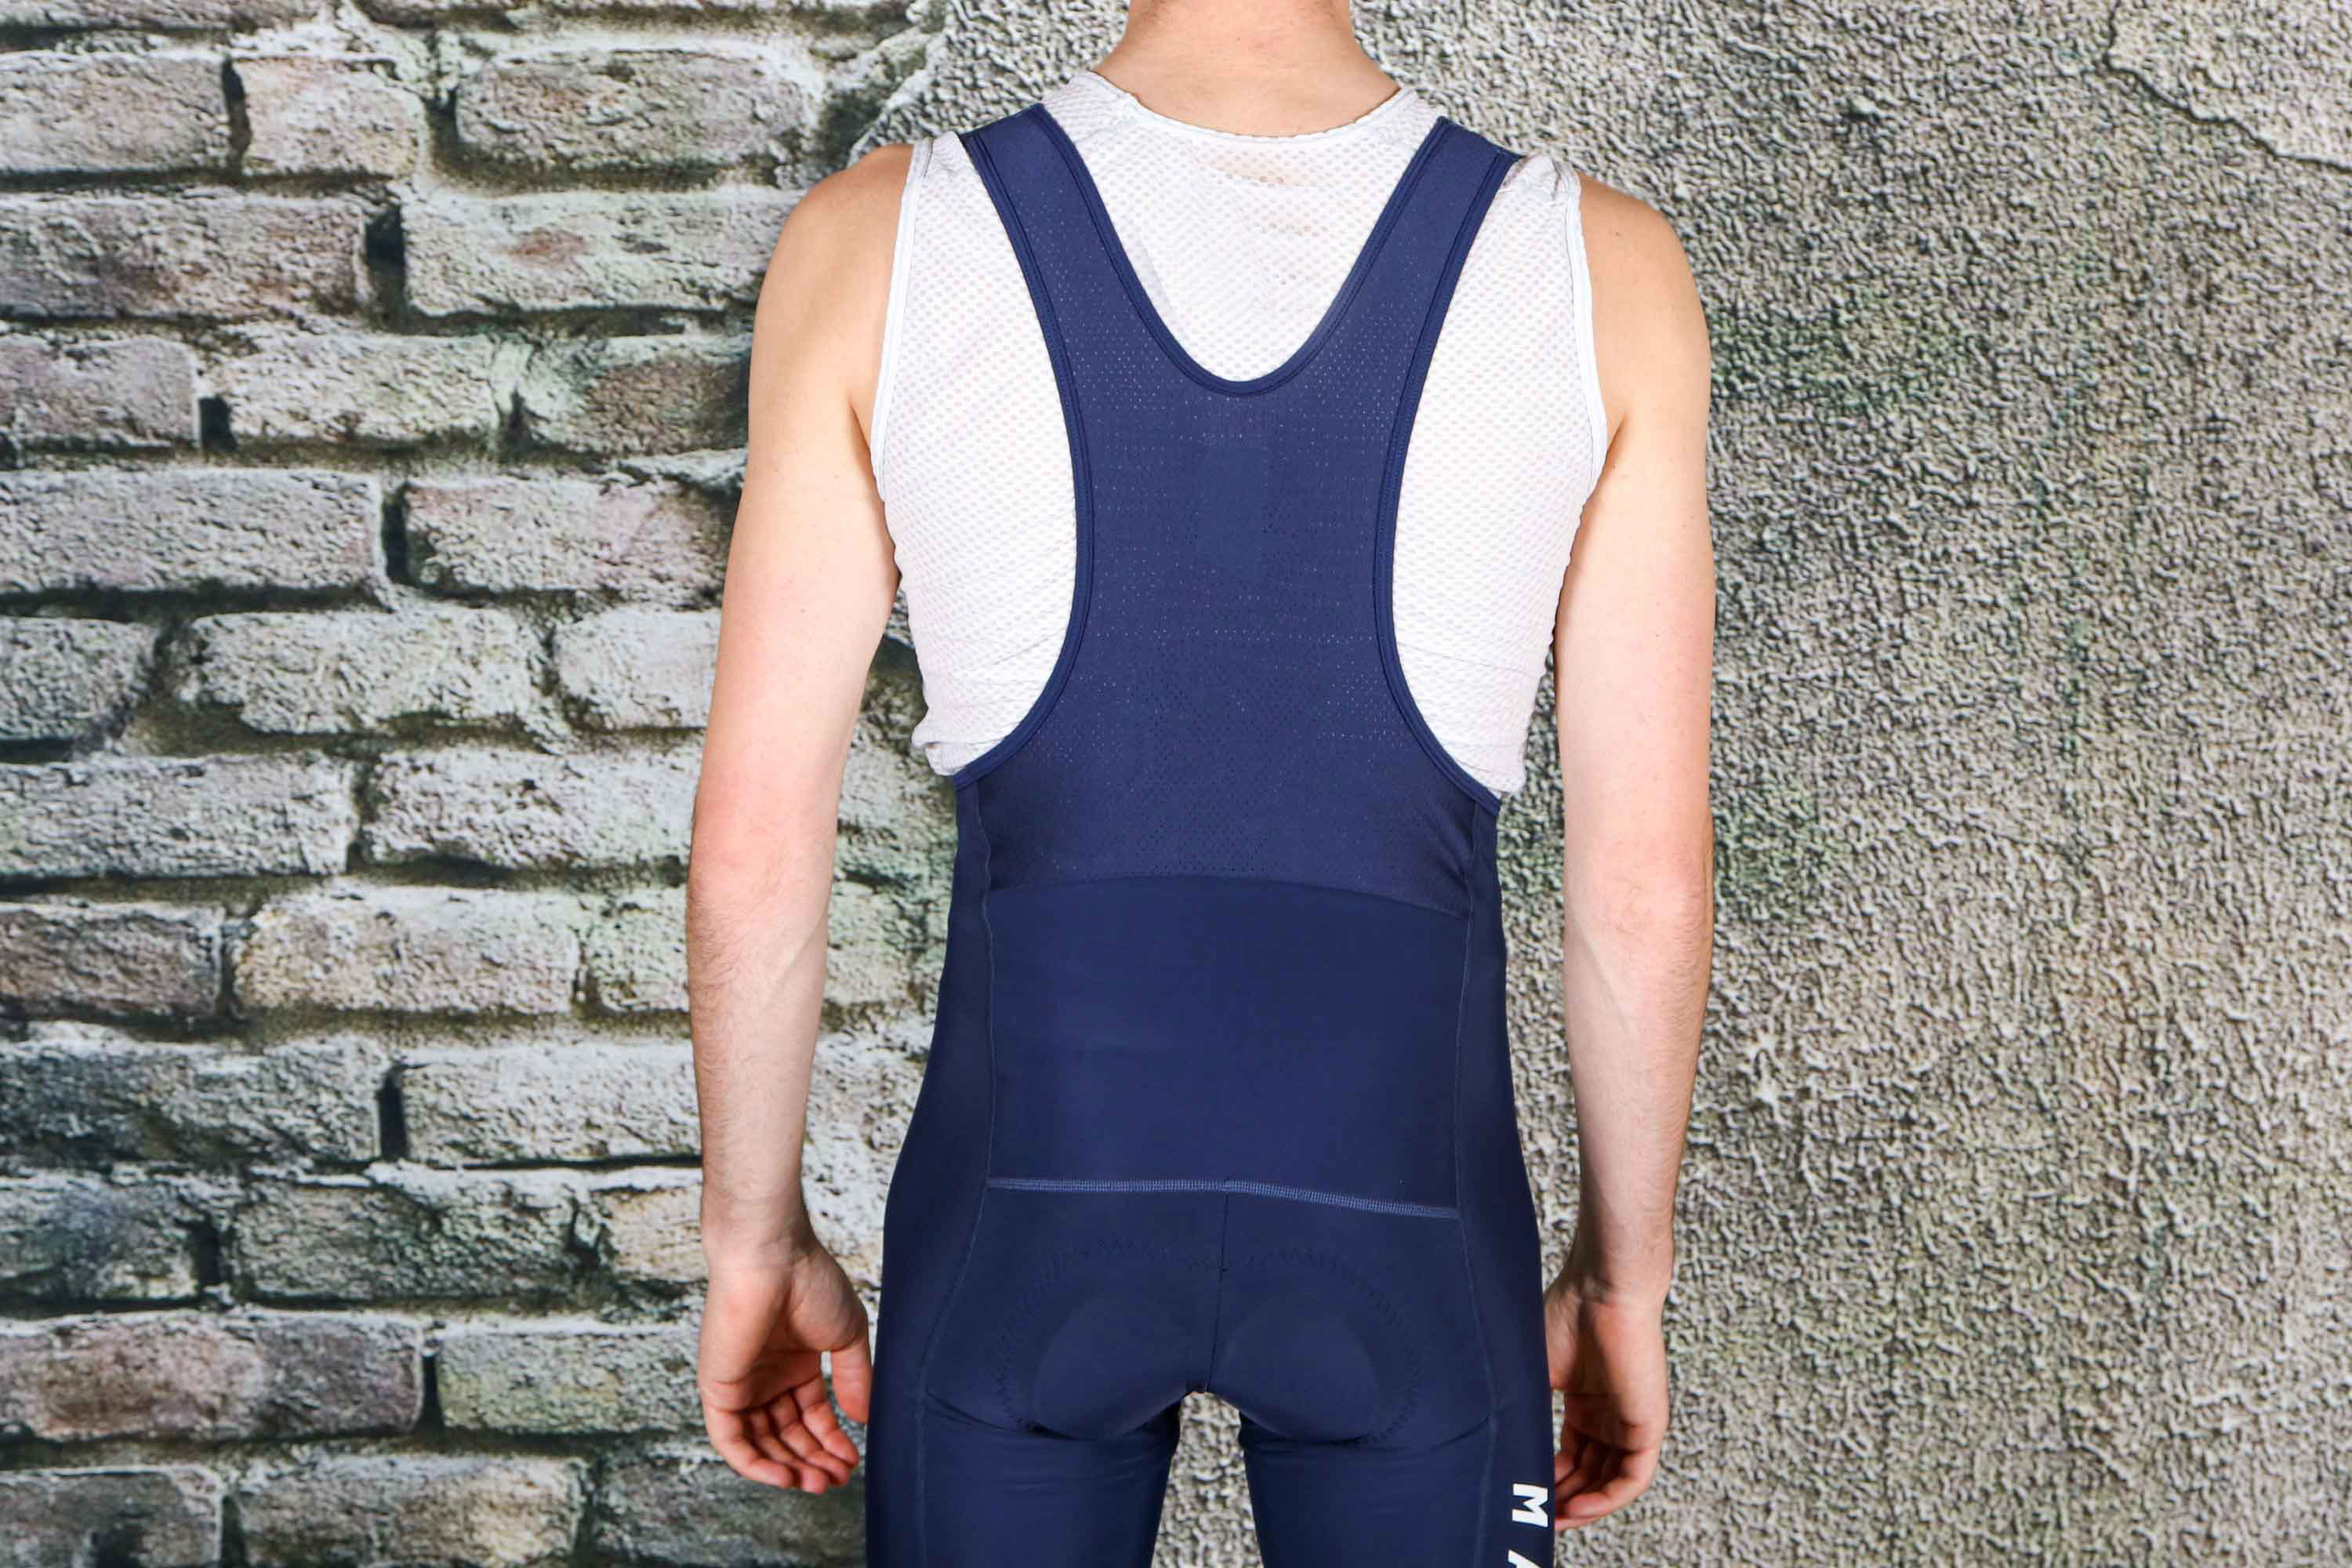 Details about  /MAAP Cycling Base Thermal Bib Tights Black Size XL Extra Large Rapha Pas Normal